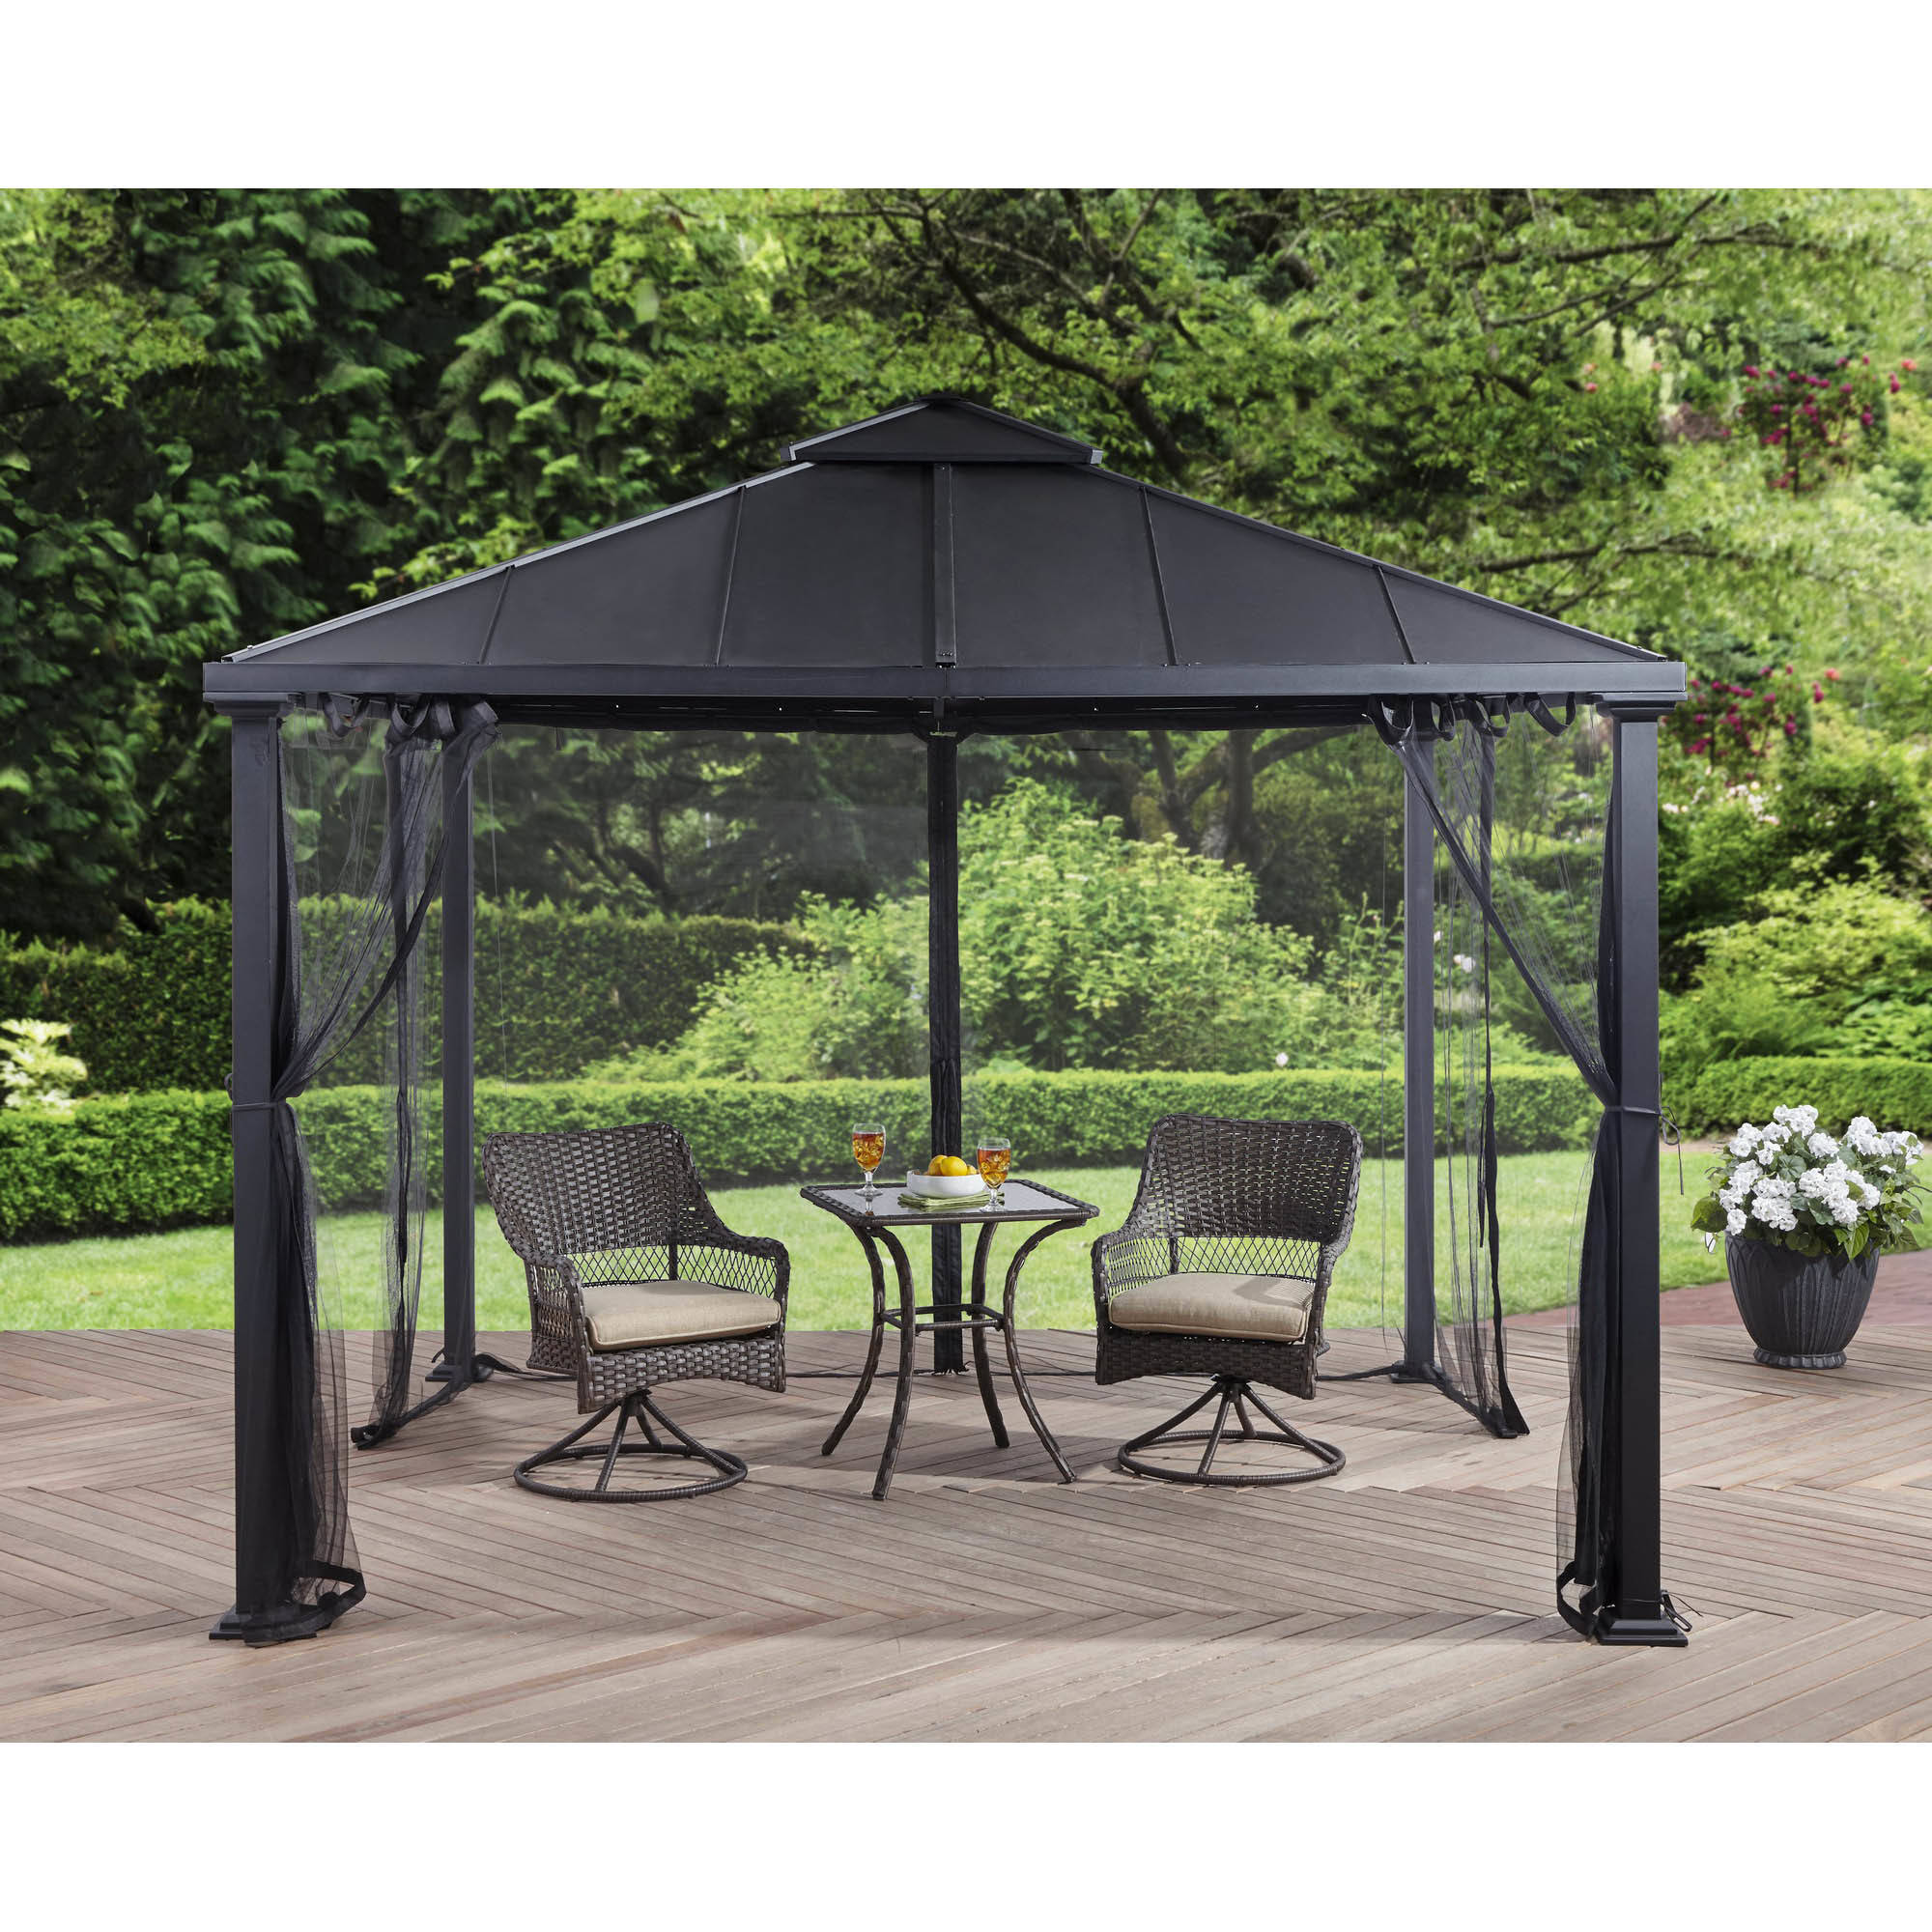 Better homes and gardens sullivan ridge hard top gazebo with netting 10x10 at garden sensation Better homes and gardens gazebo